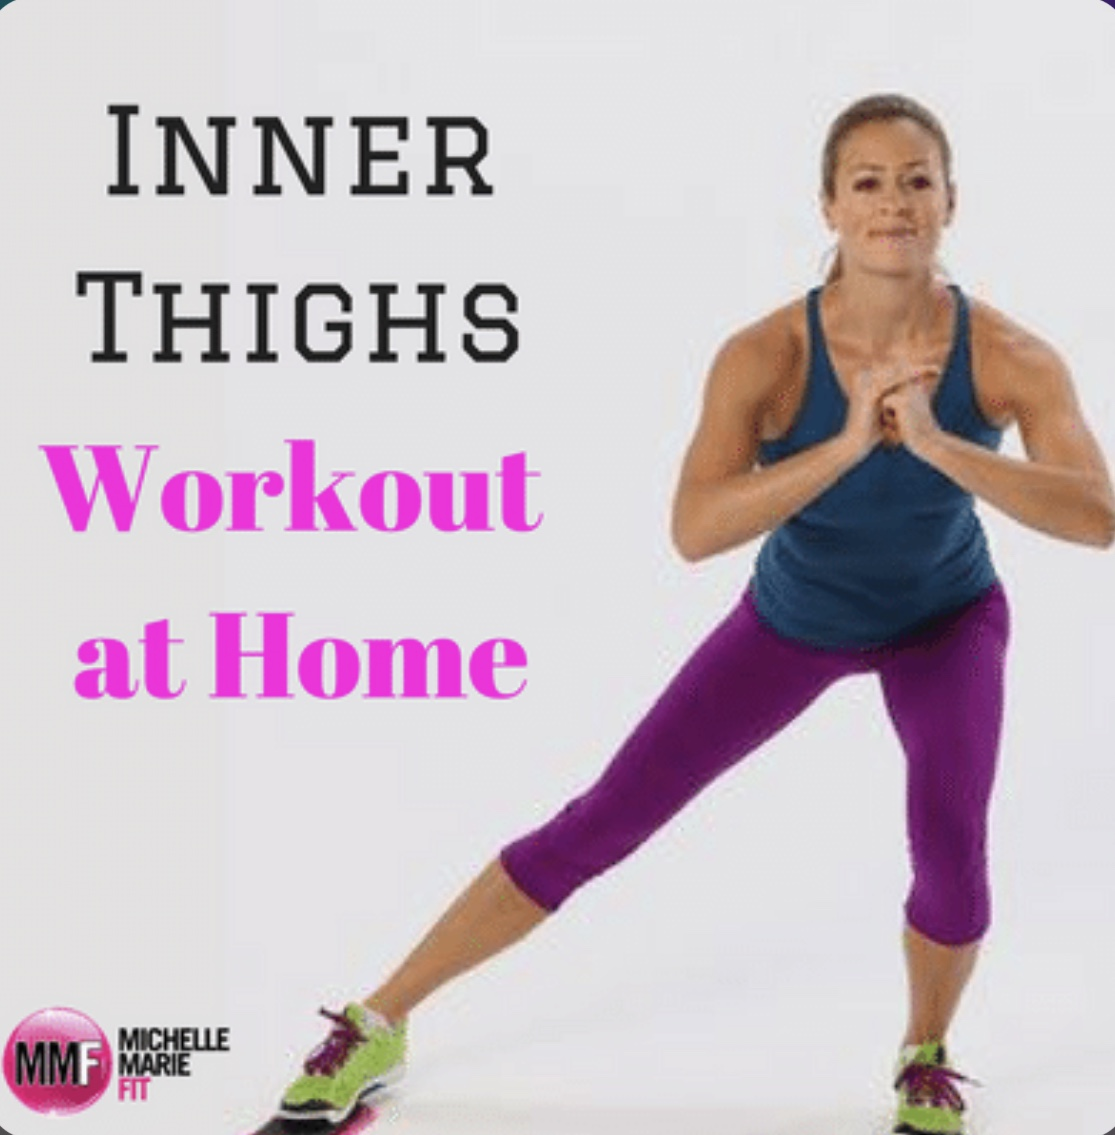 inner thigh workouts at home